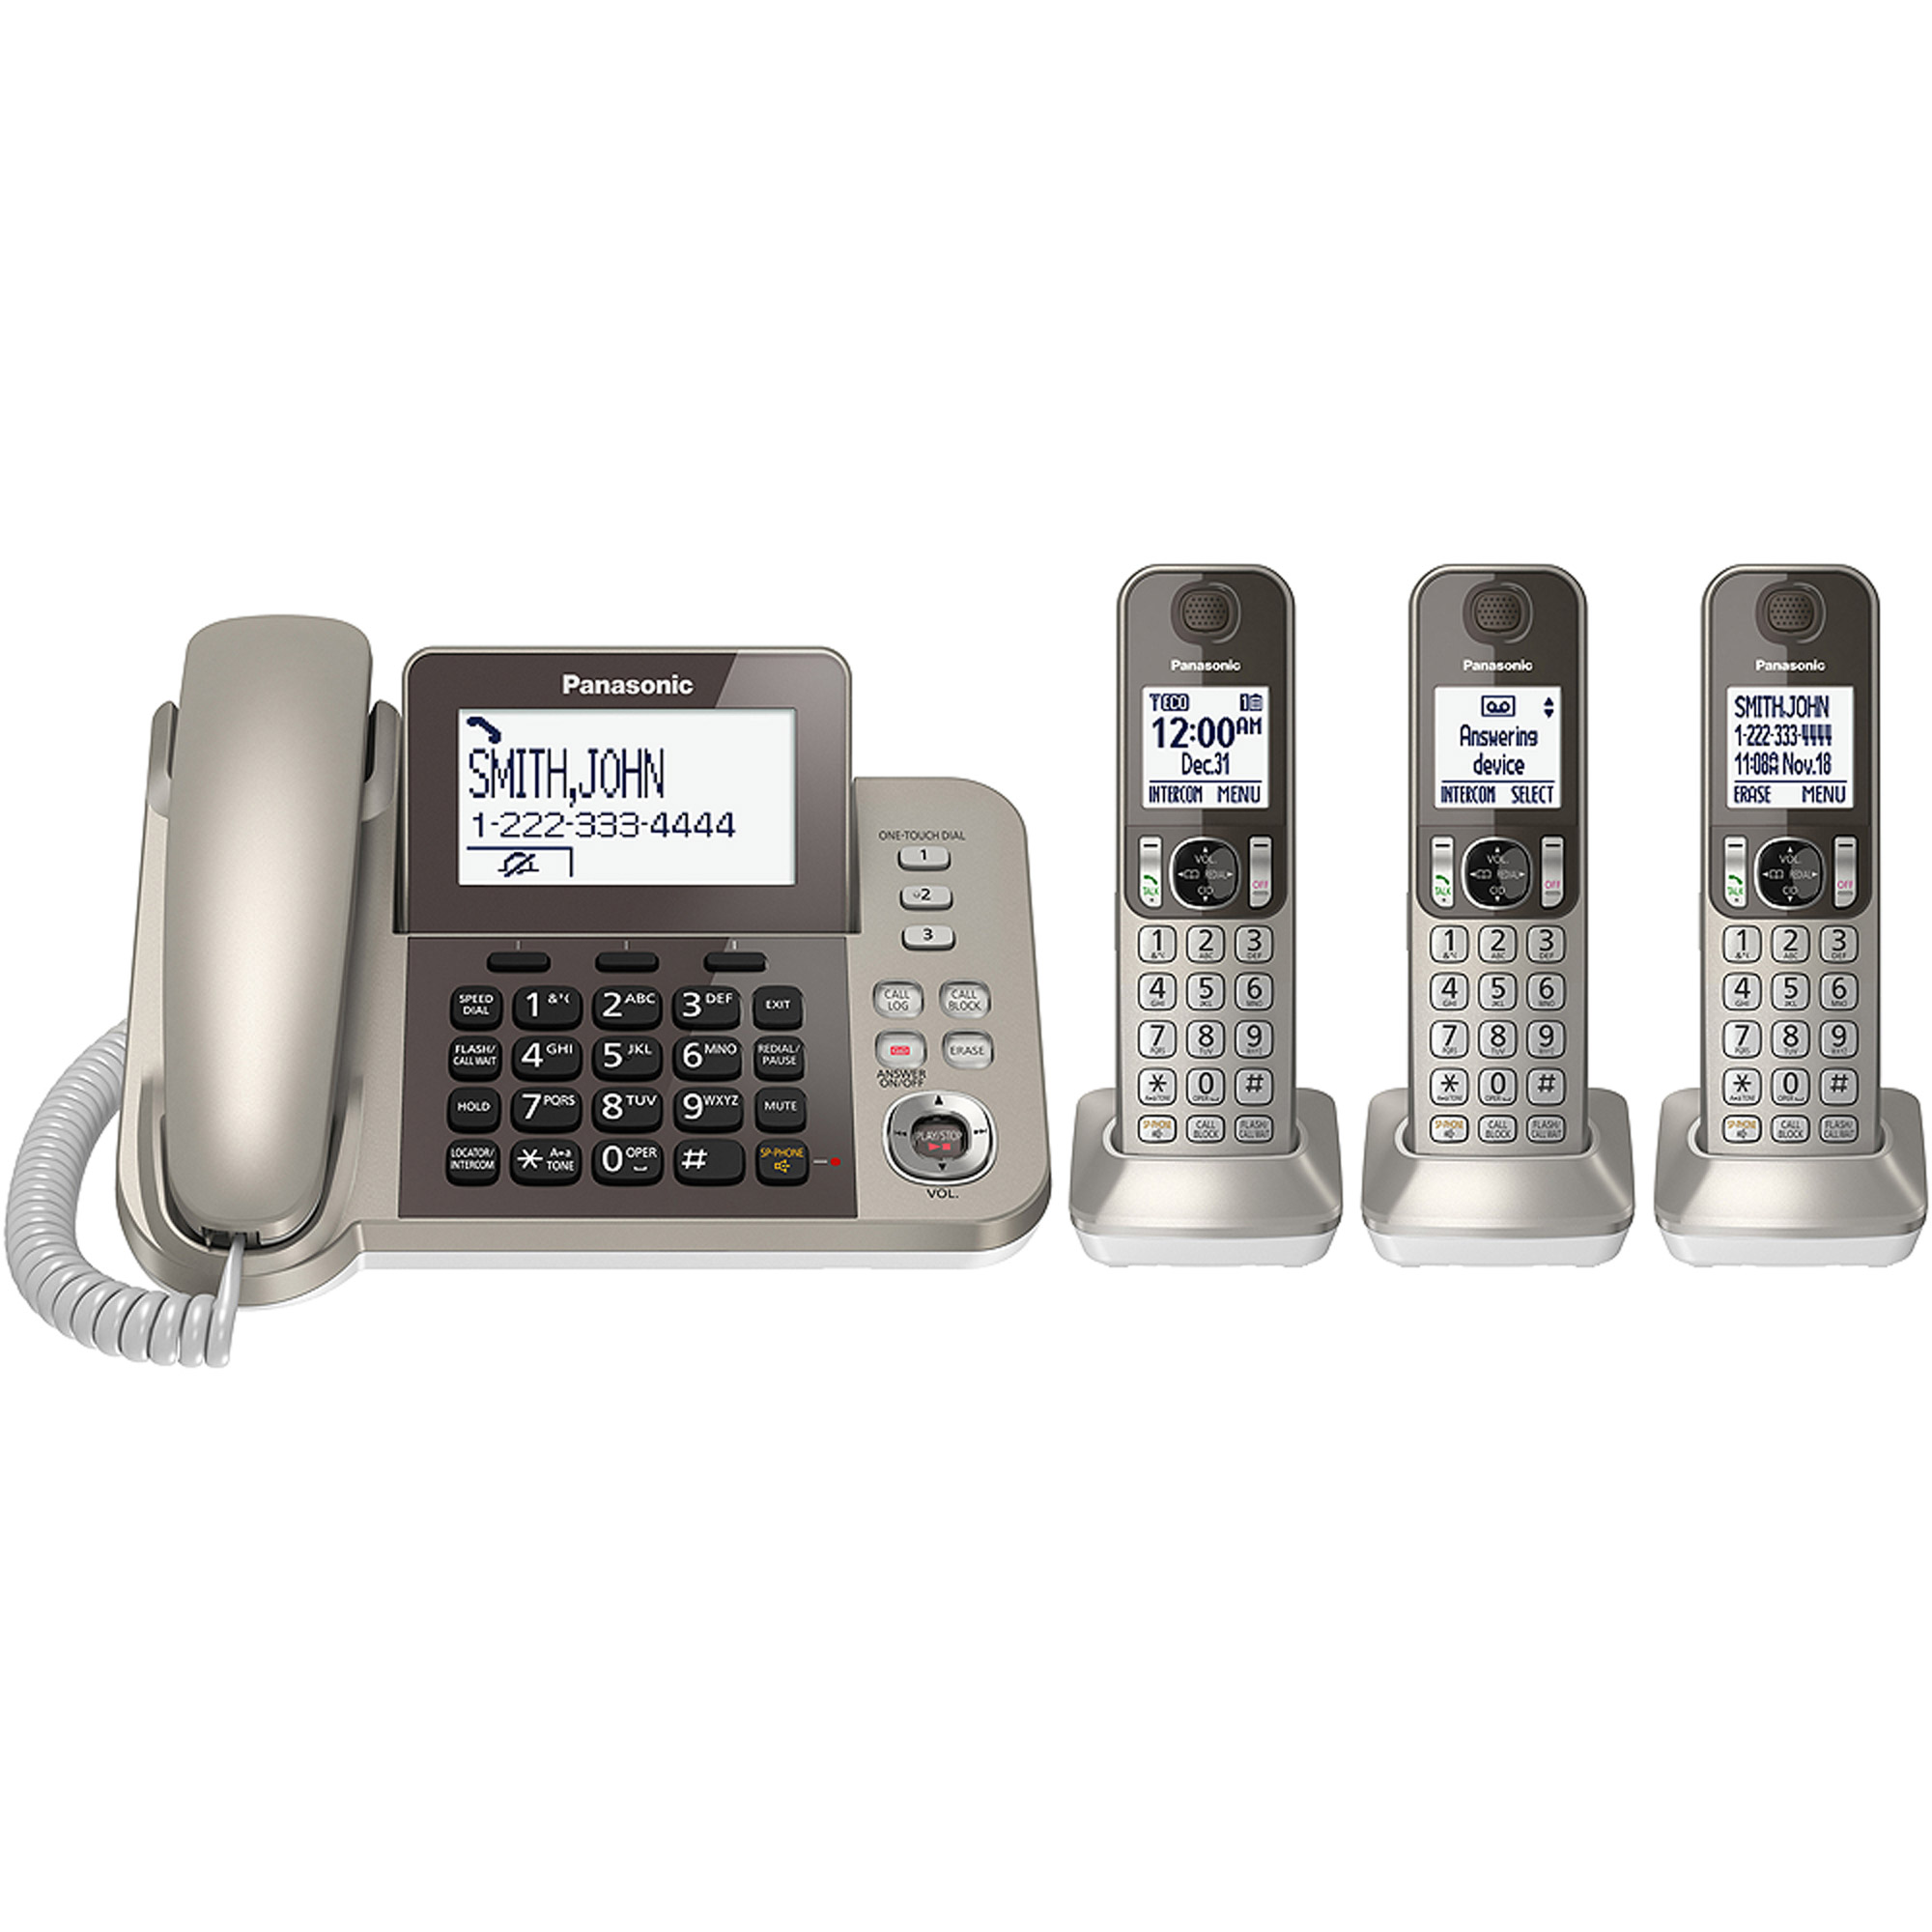 Panasonic Cordless Phone and Answering Machine with 3 Handsets